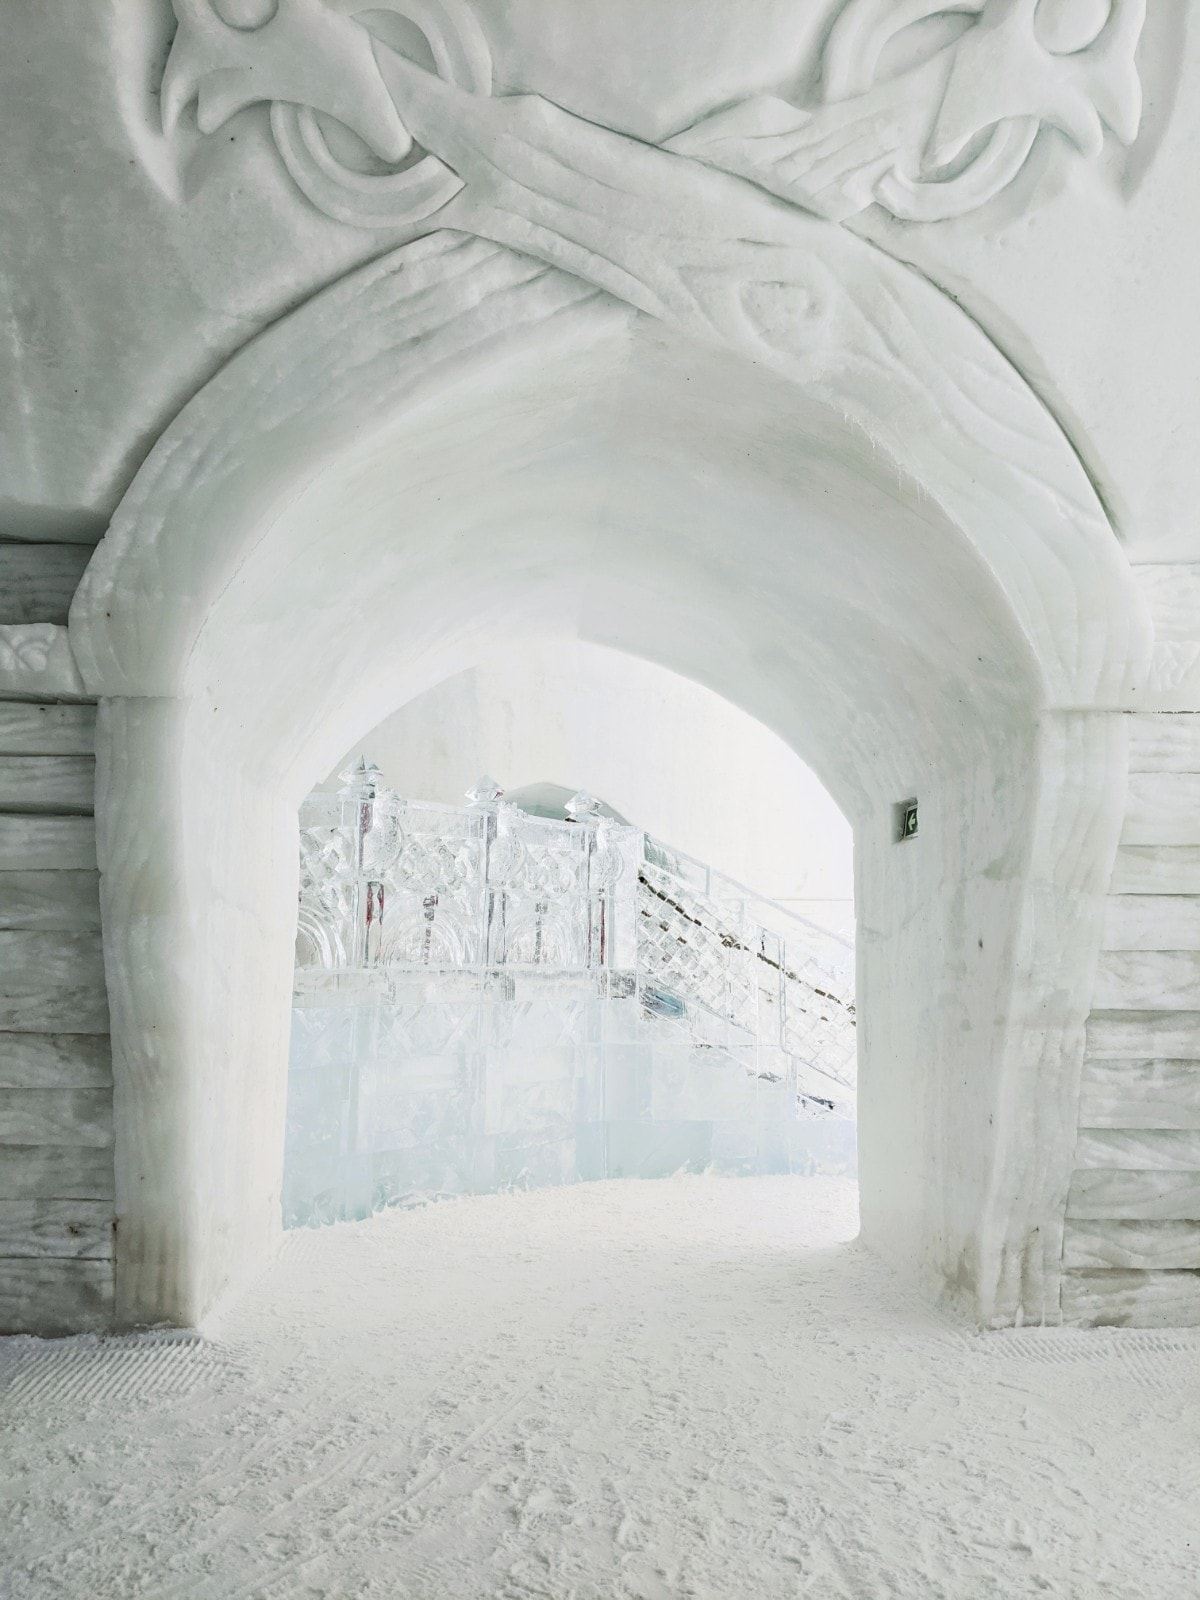 The ice stairway spotted through a snow archway